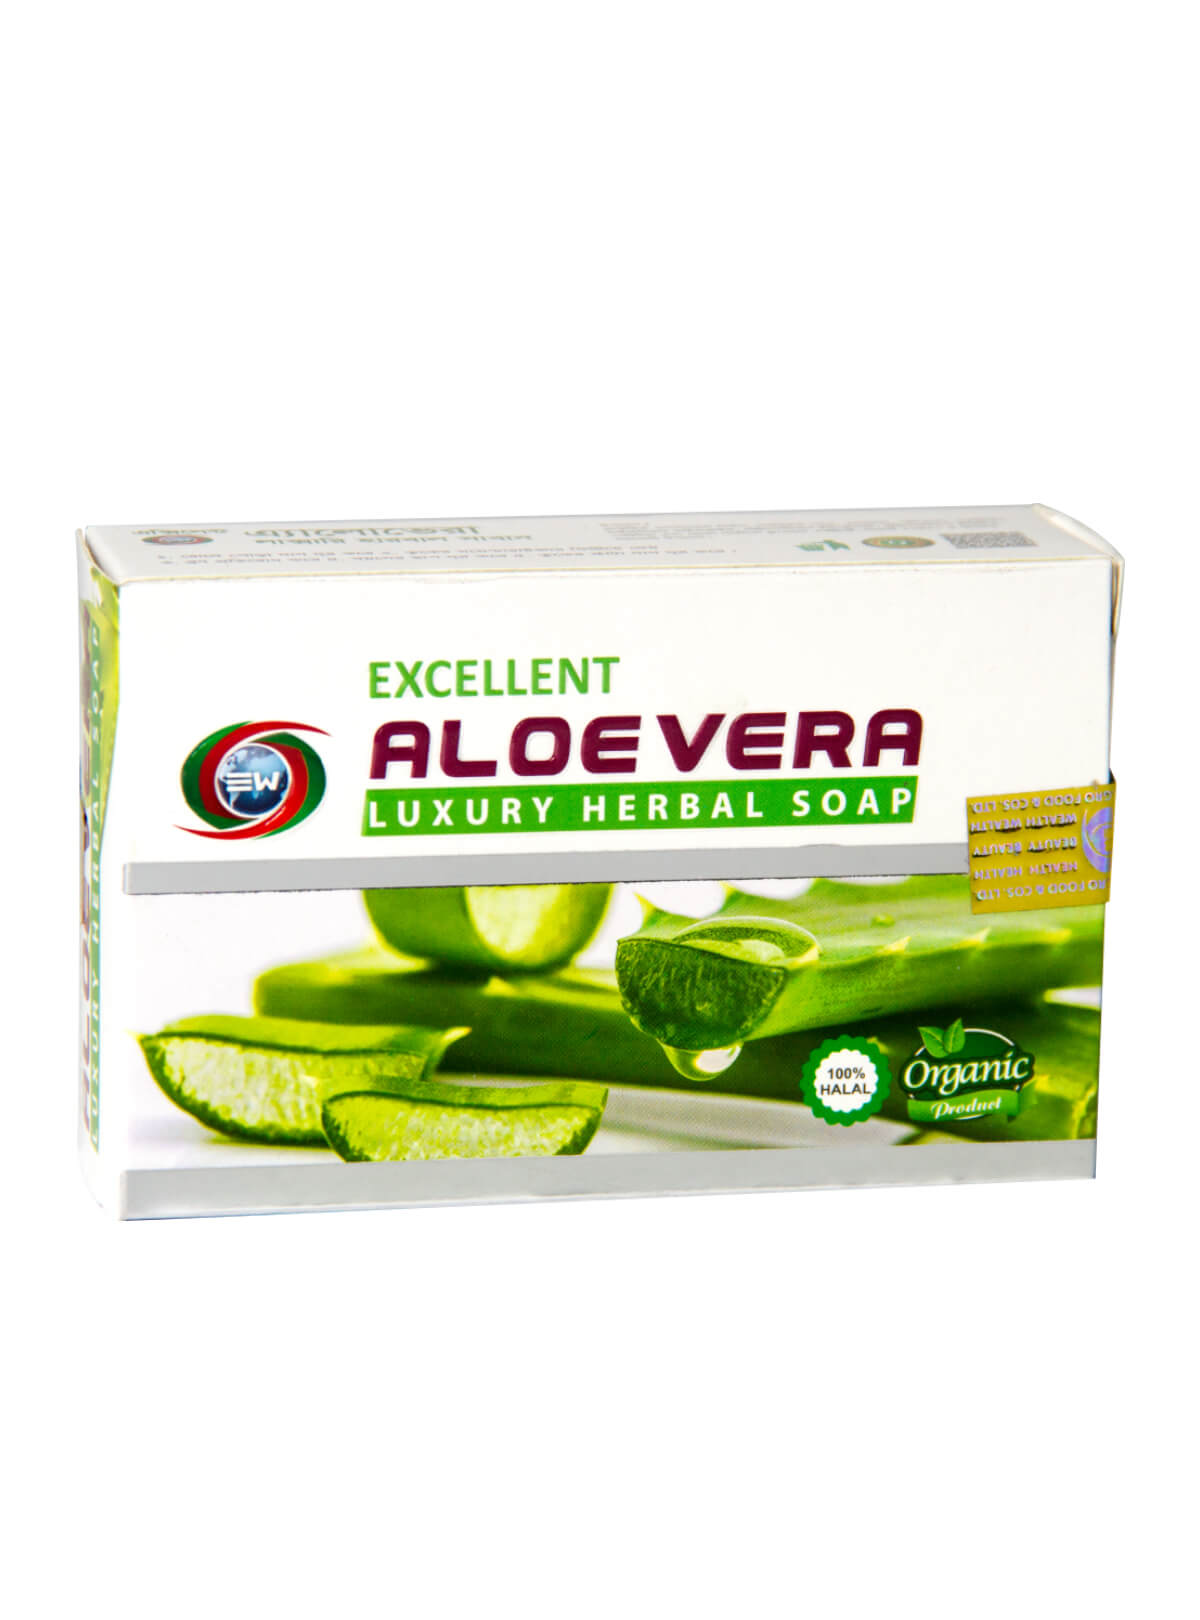 Aloe Vera Luxury Herbal Soap